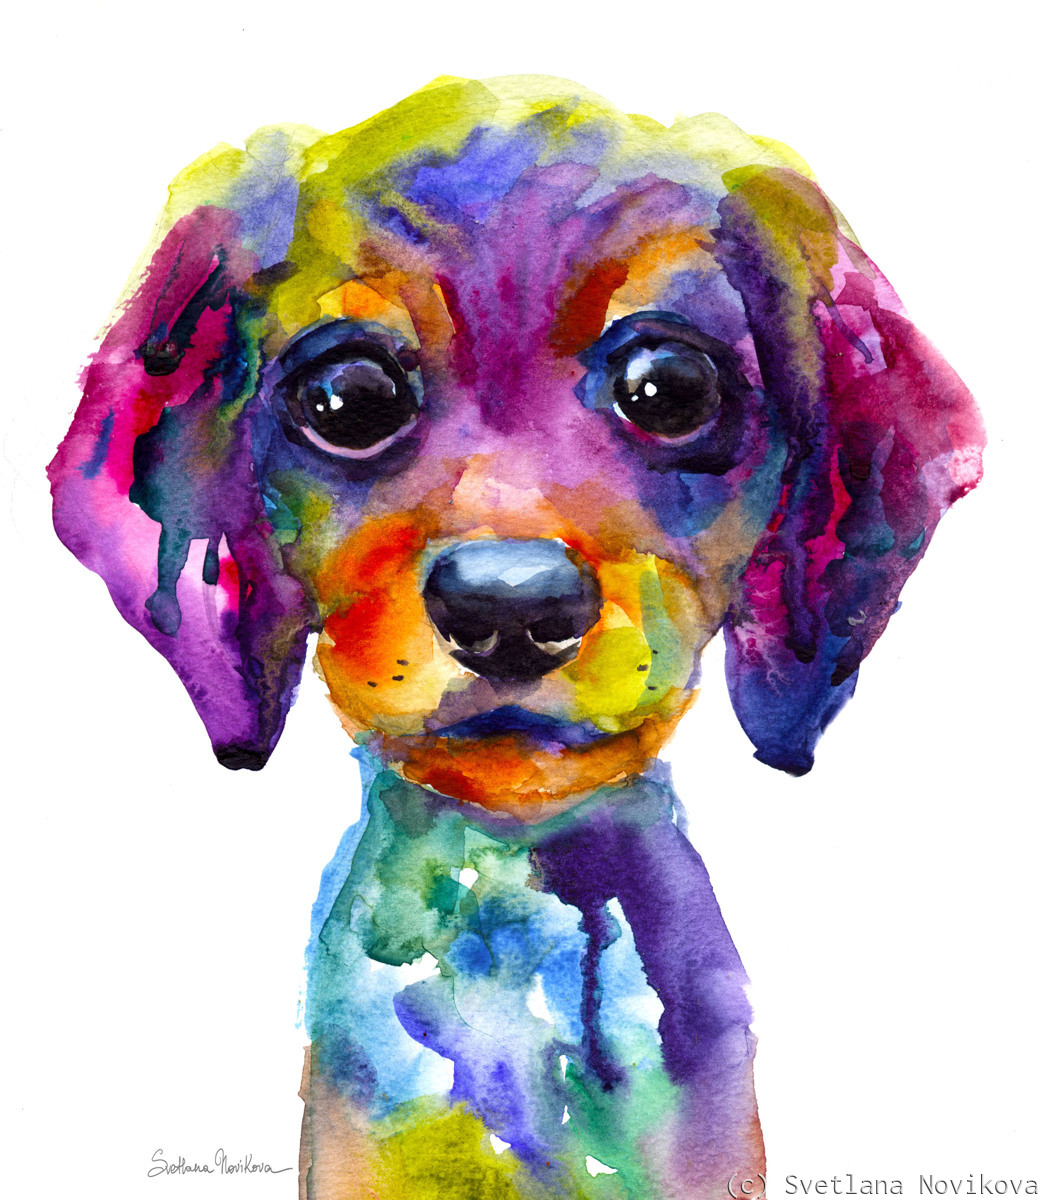 Colorful Dachshund wiener dog painting (large view)